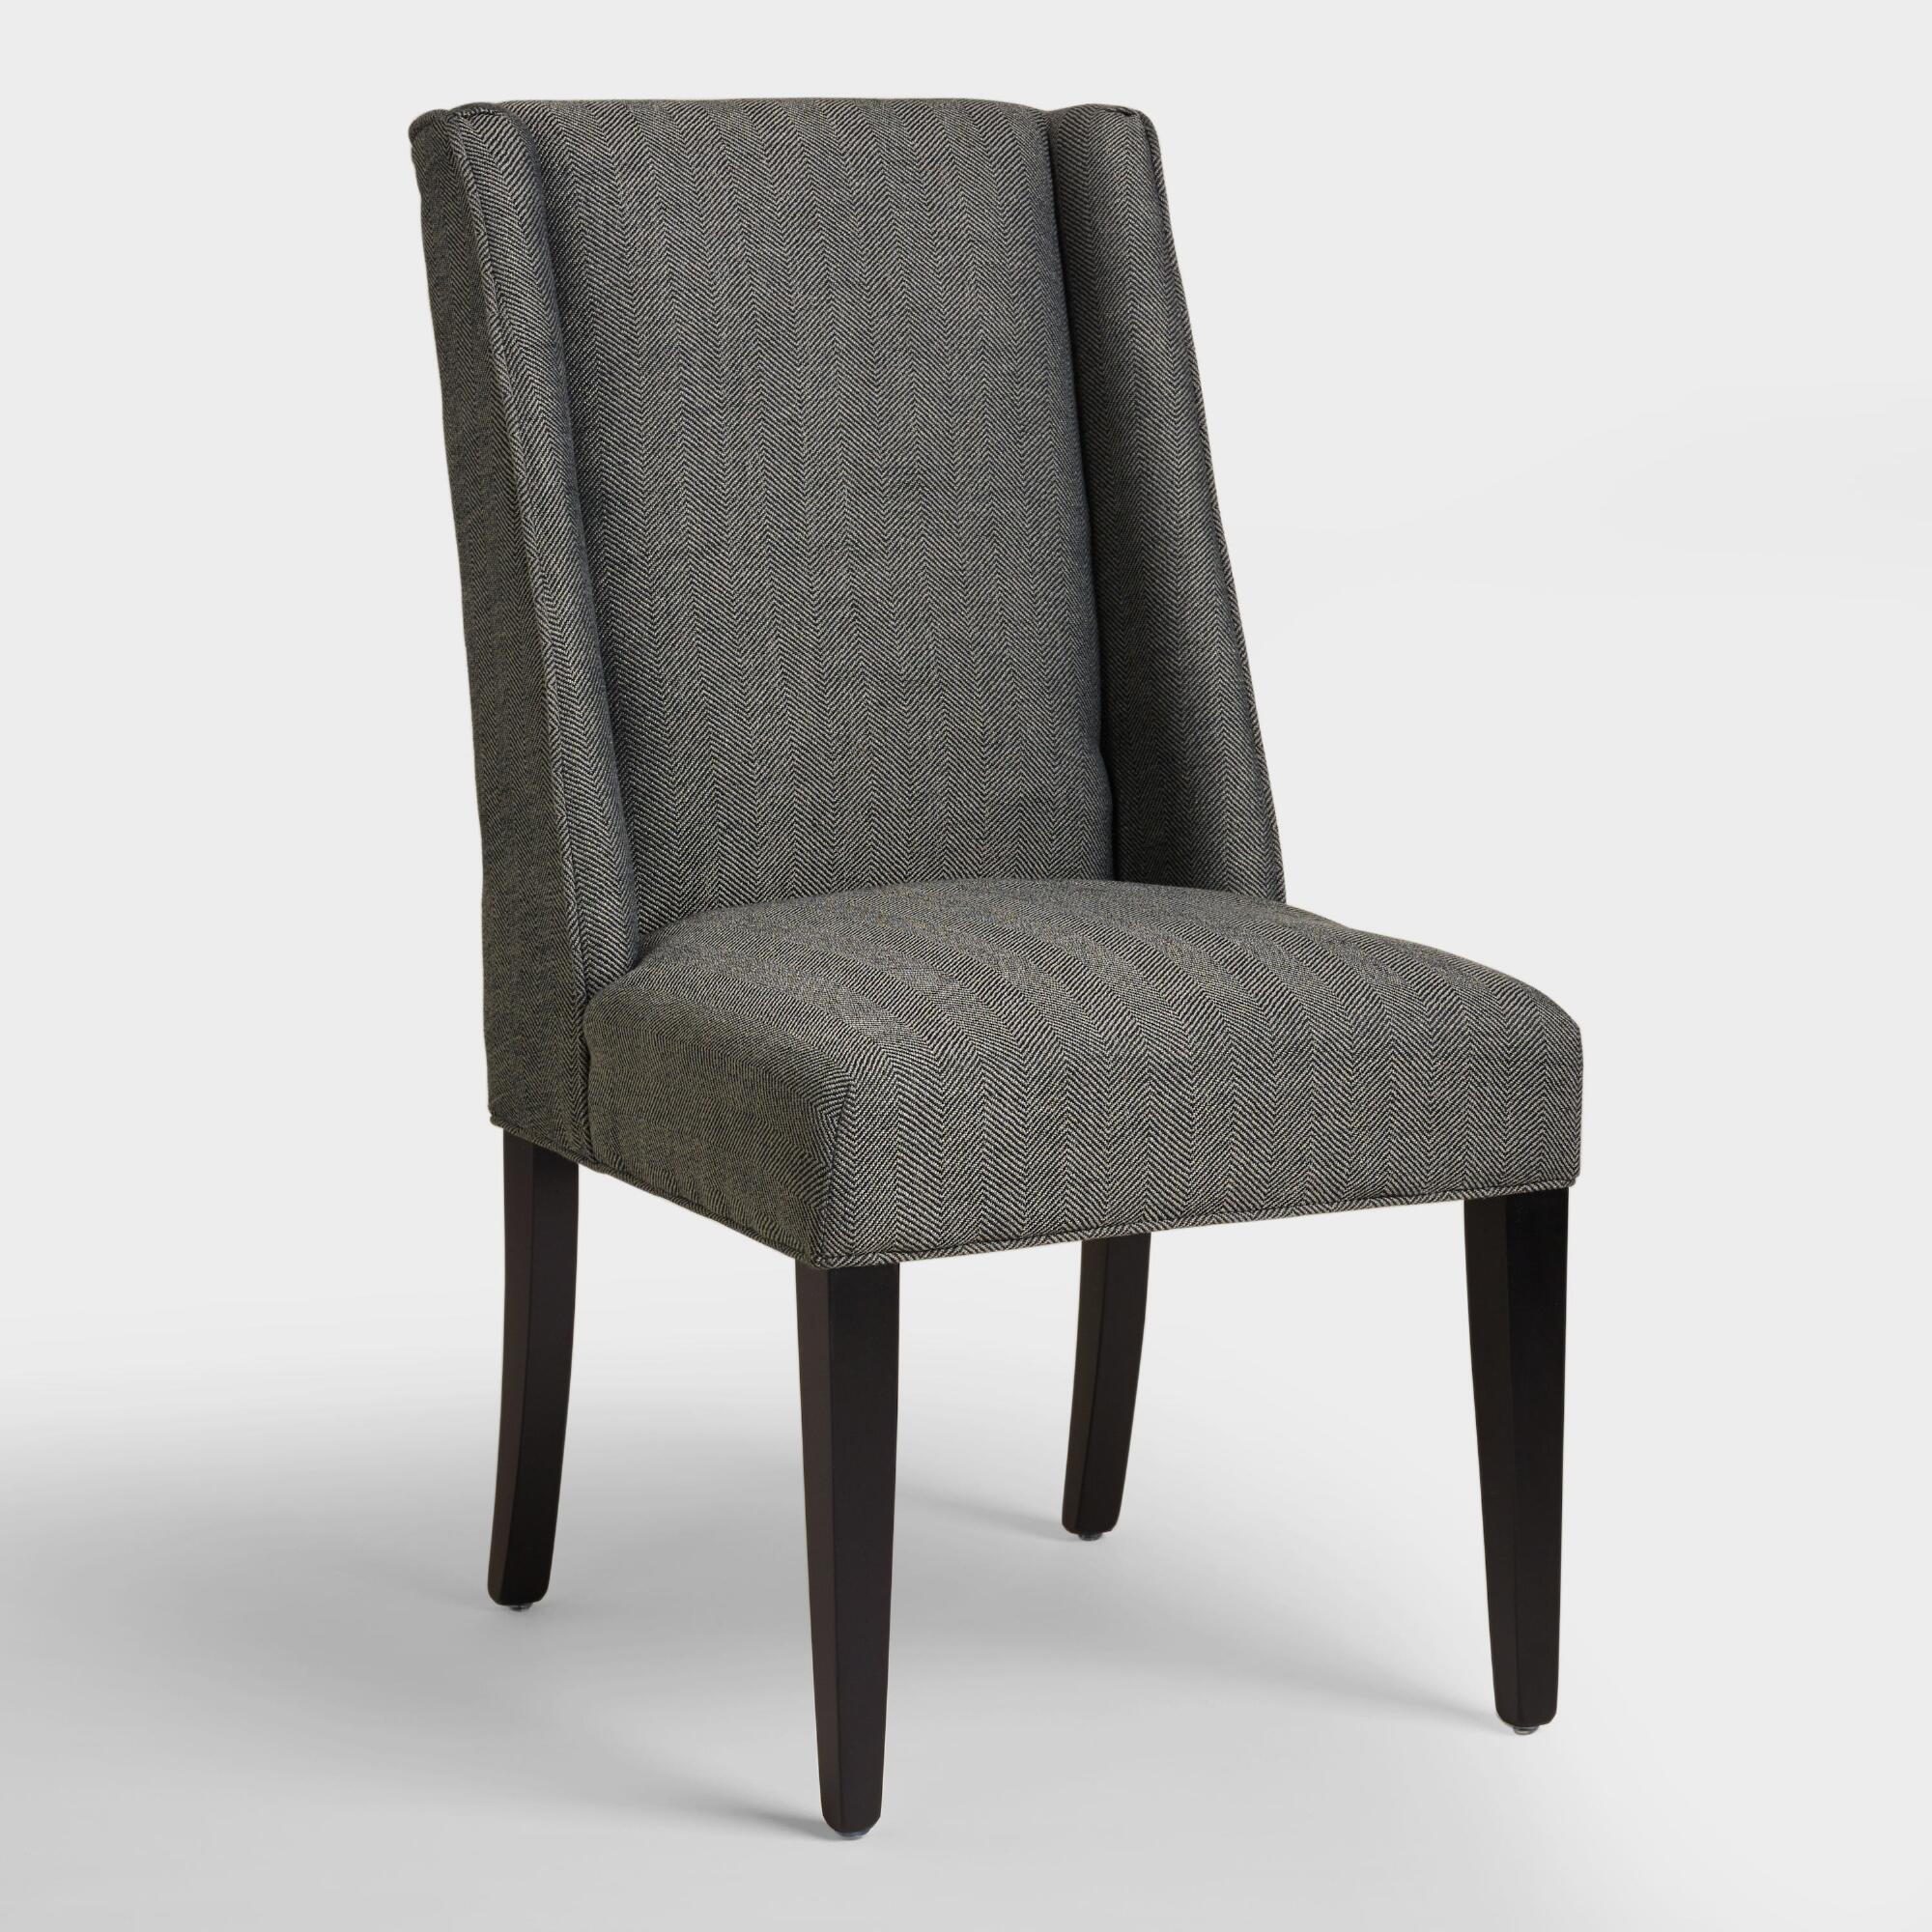 Wooden dining room chairs - Charcoal Herringbone Lawford Dining Chairs